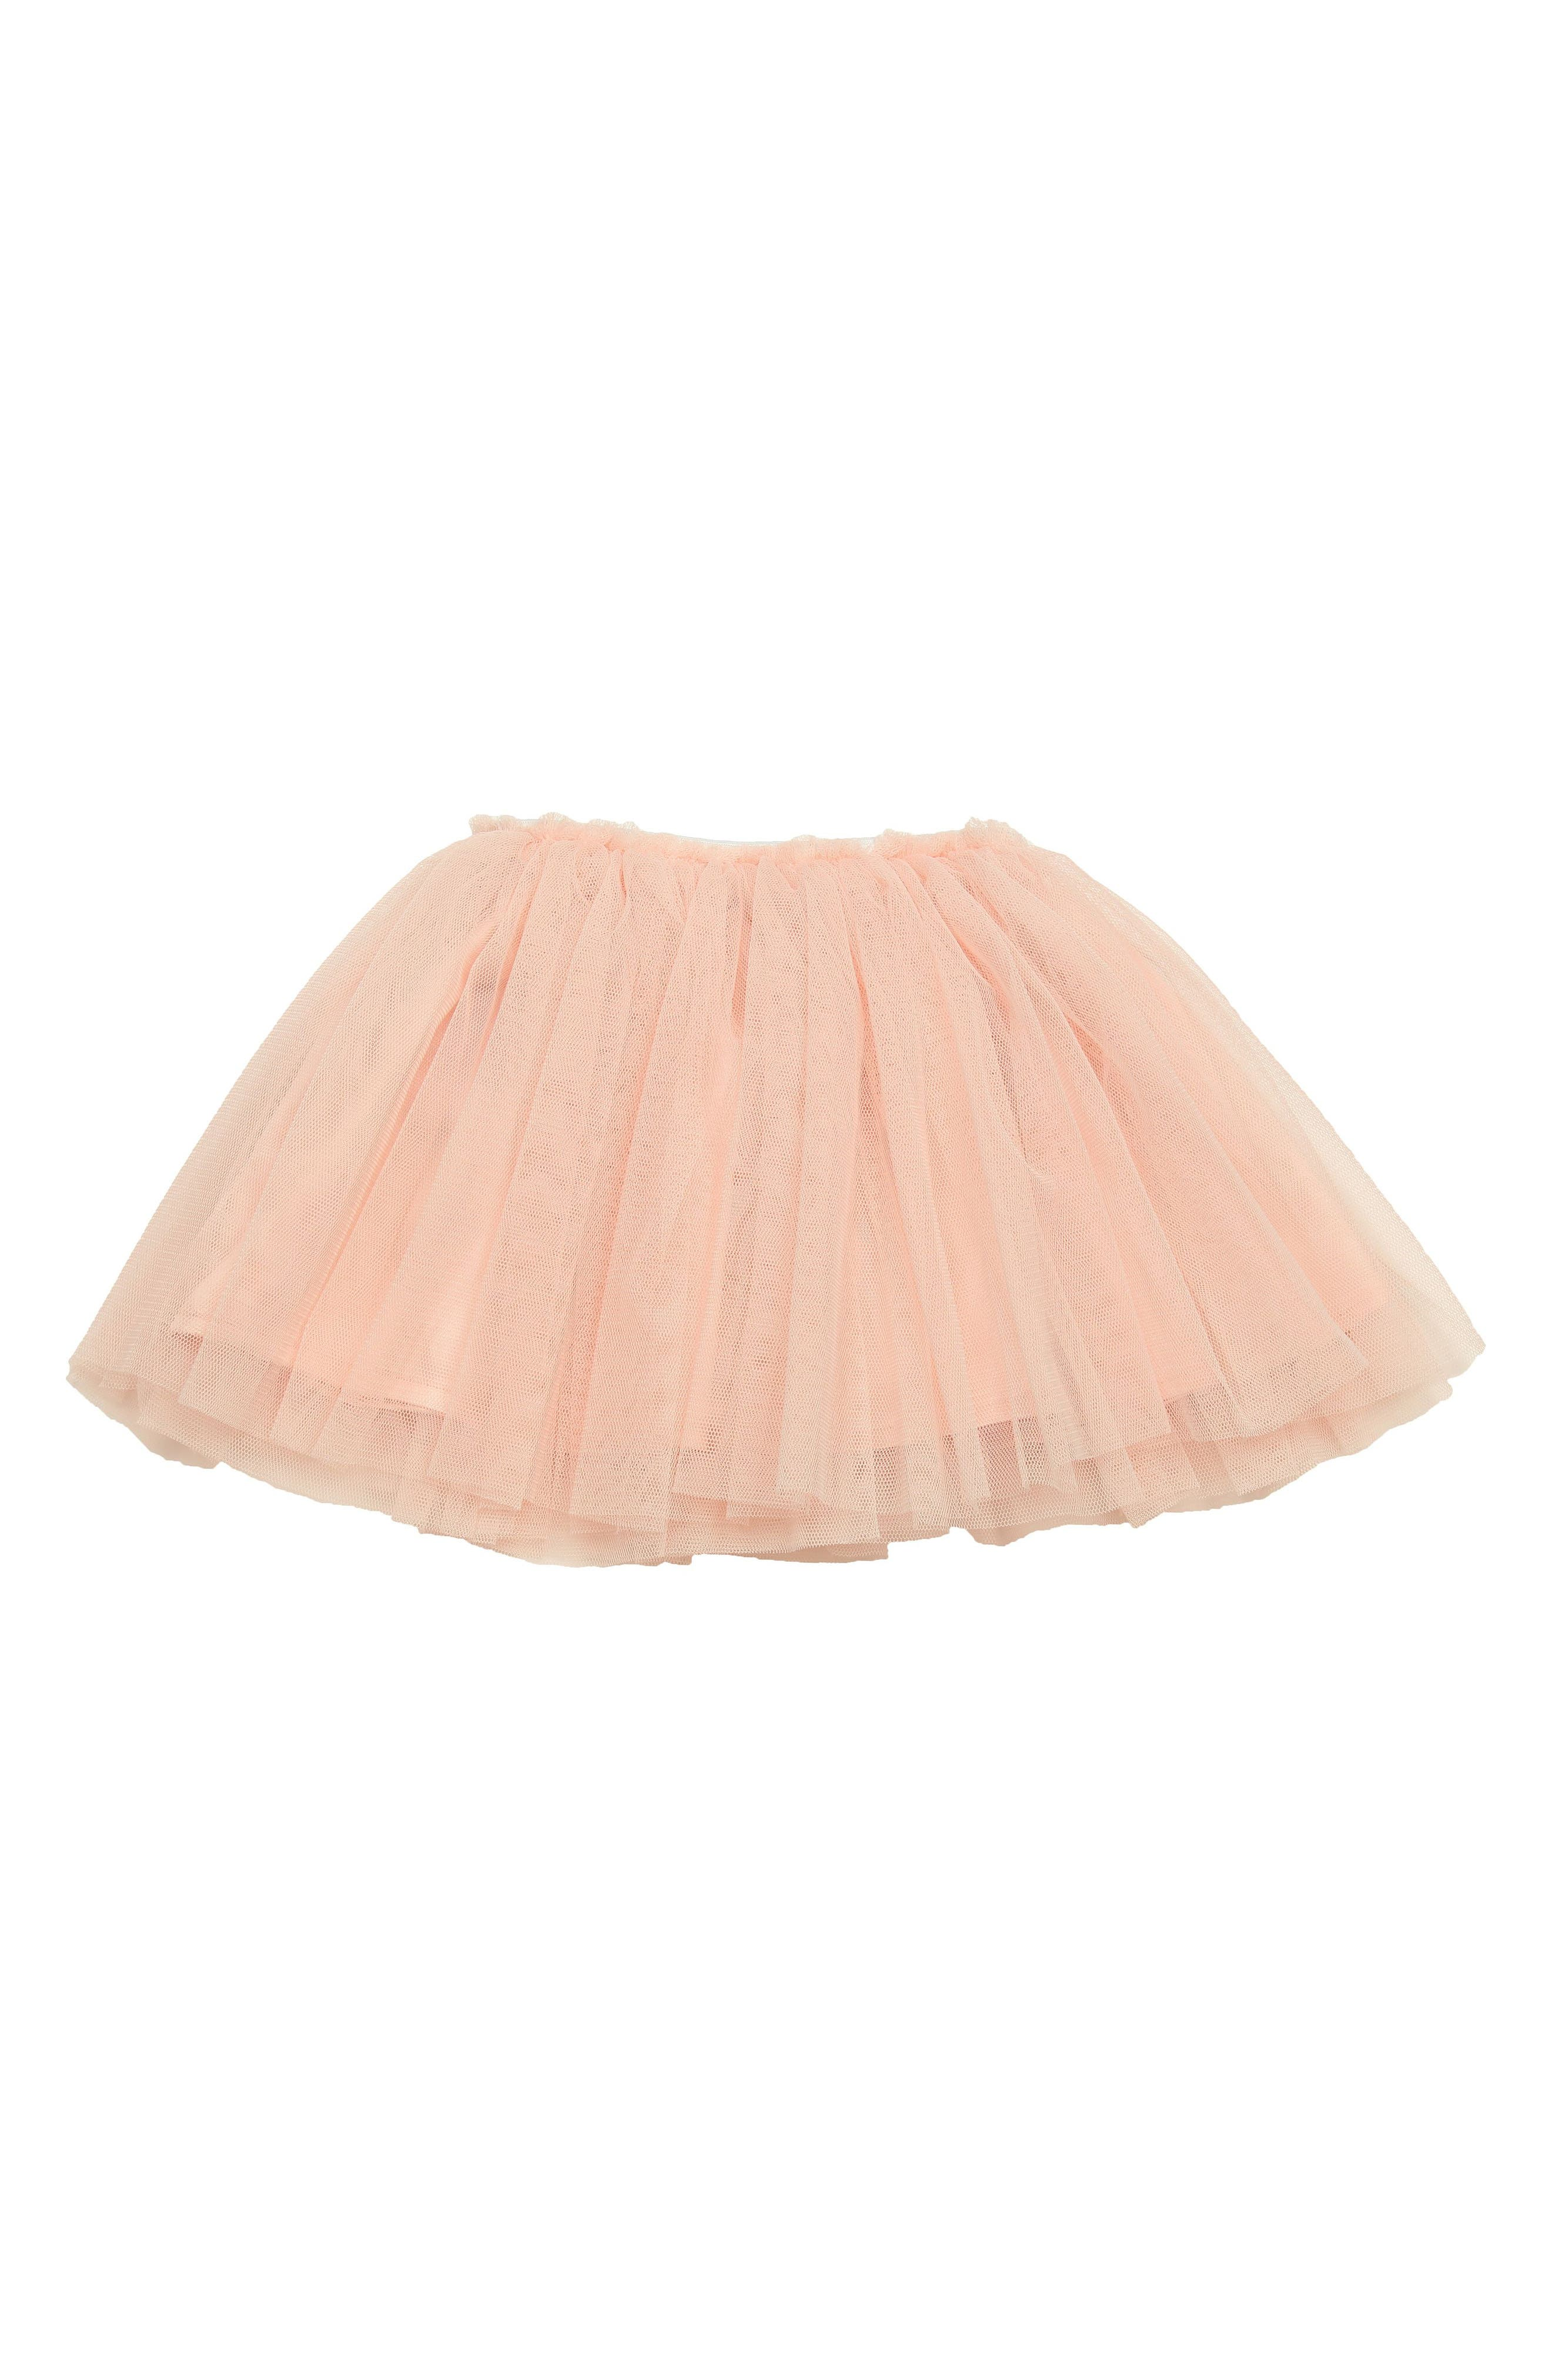 Tutu Skirt,                             Main thumbnail 1, color,                             ROSE